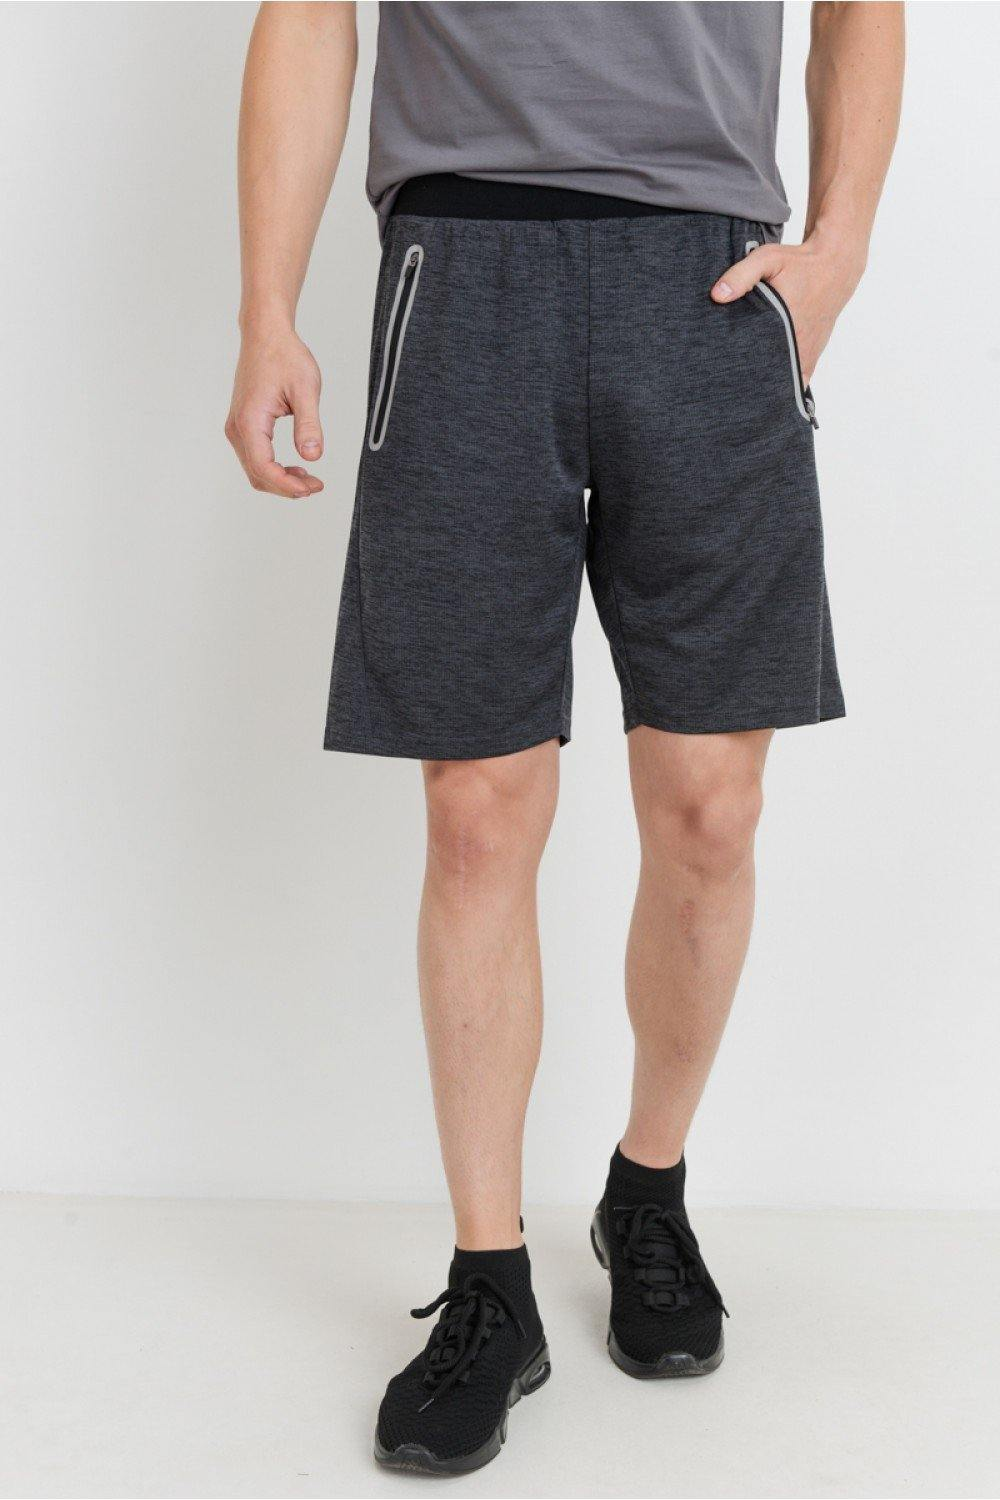 Echelon Men's Atheisure Short with pockets ?id=22459042758823